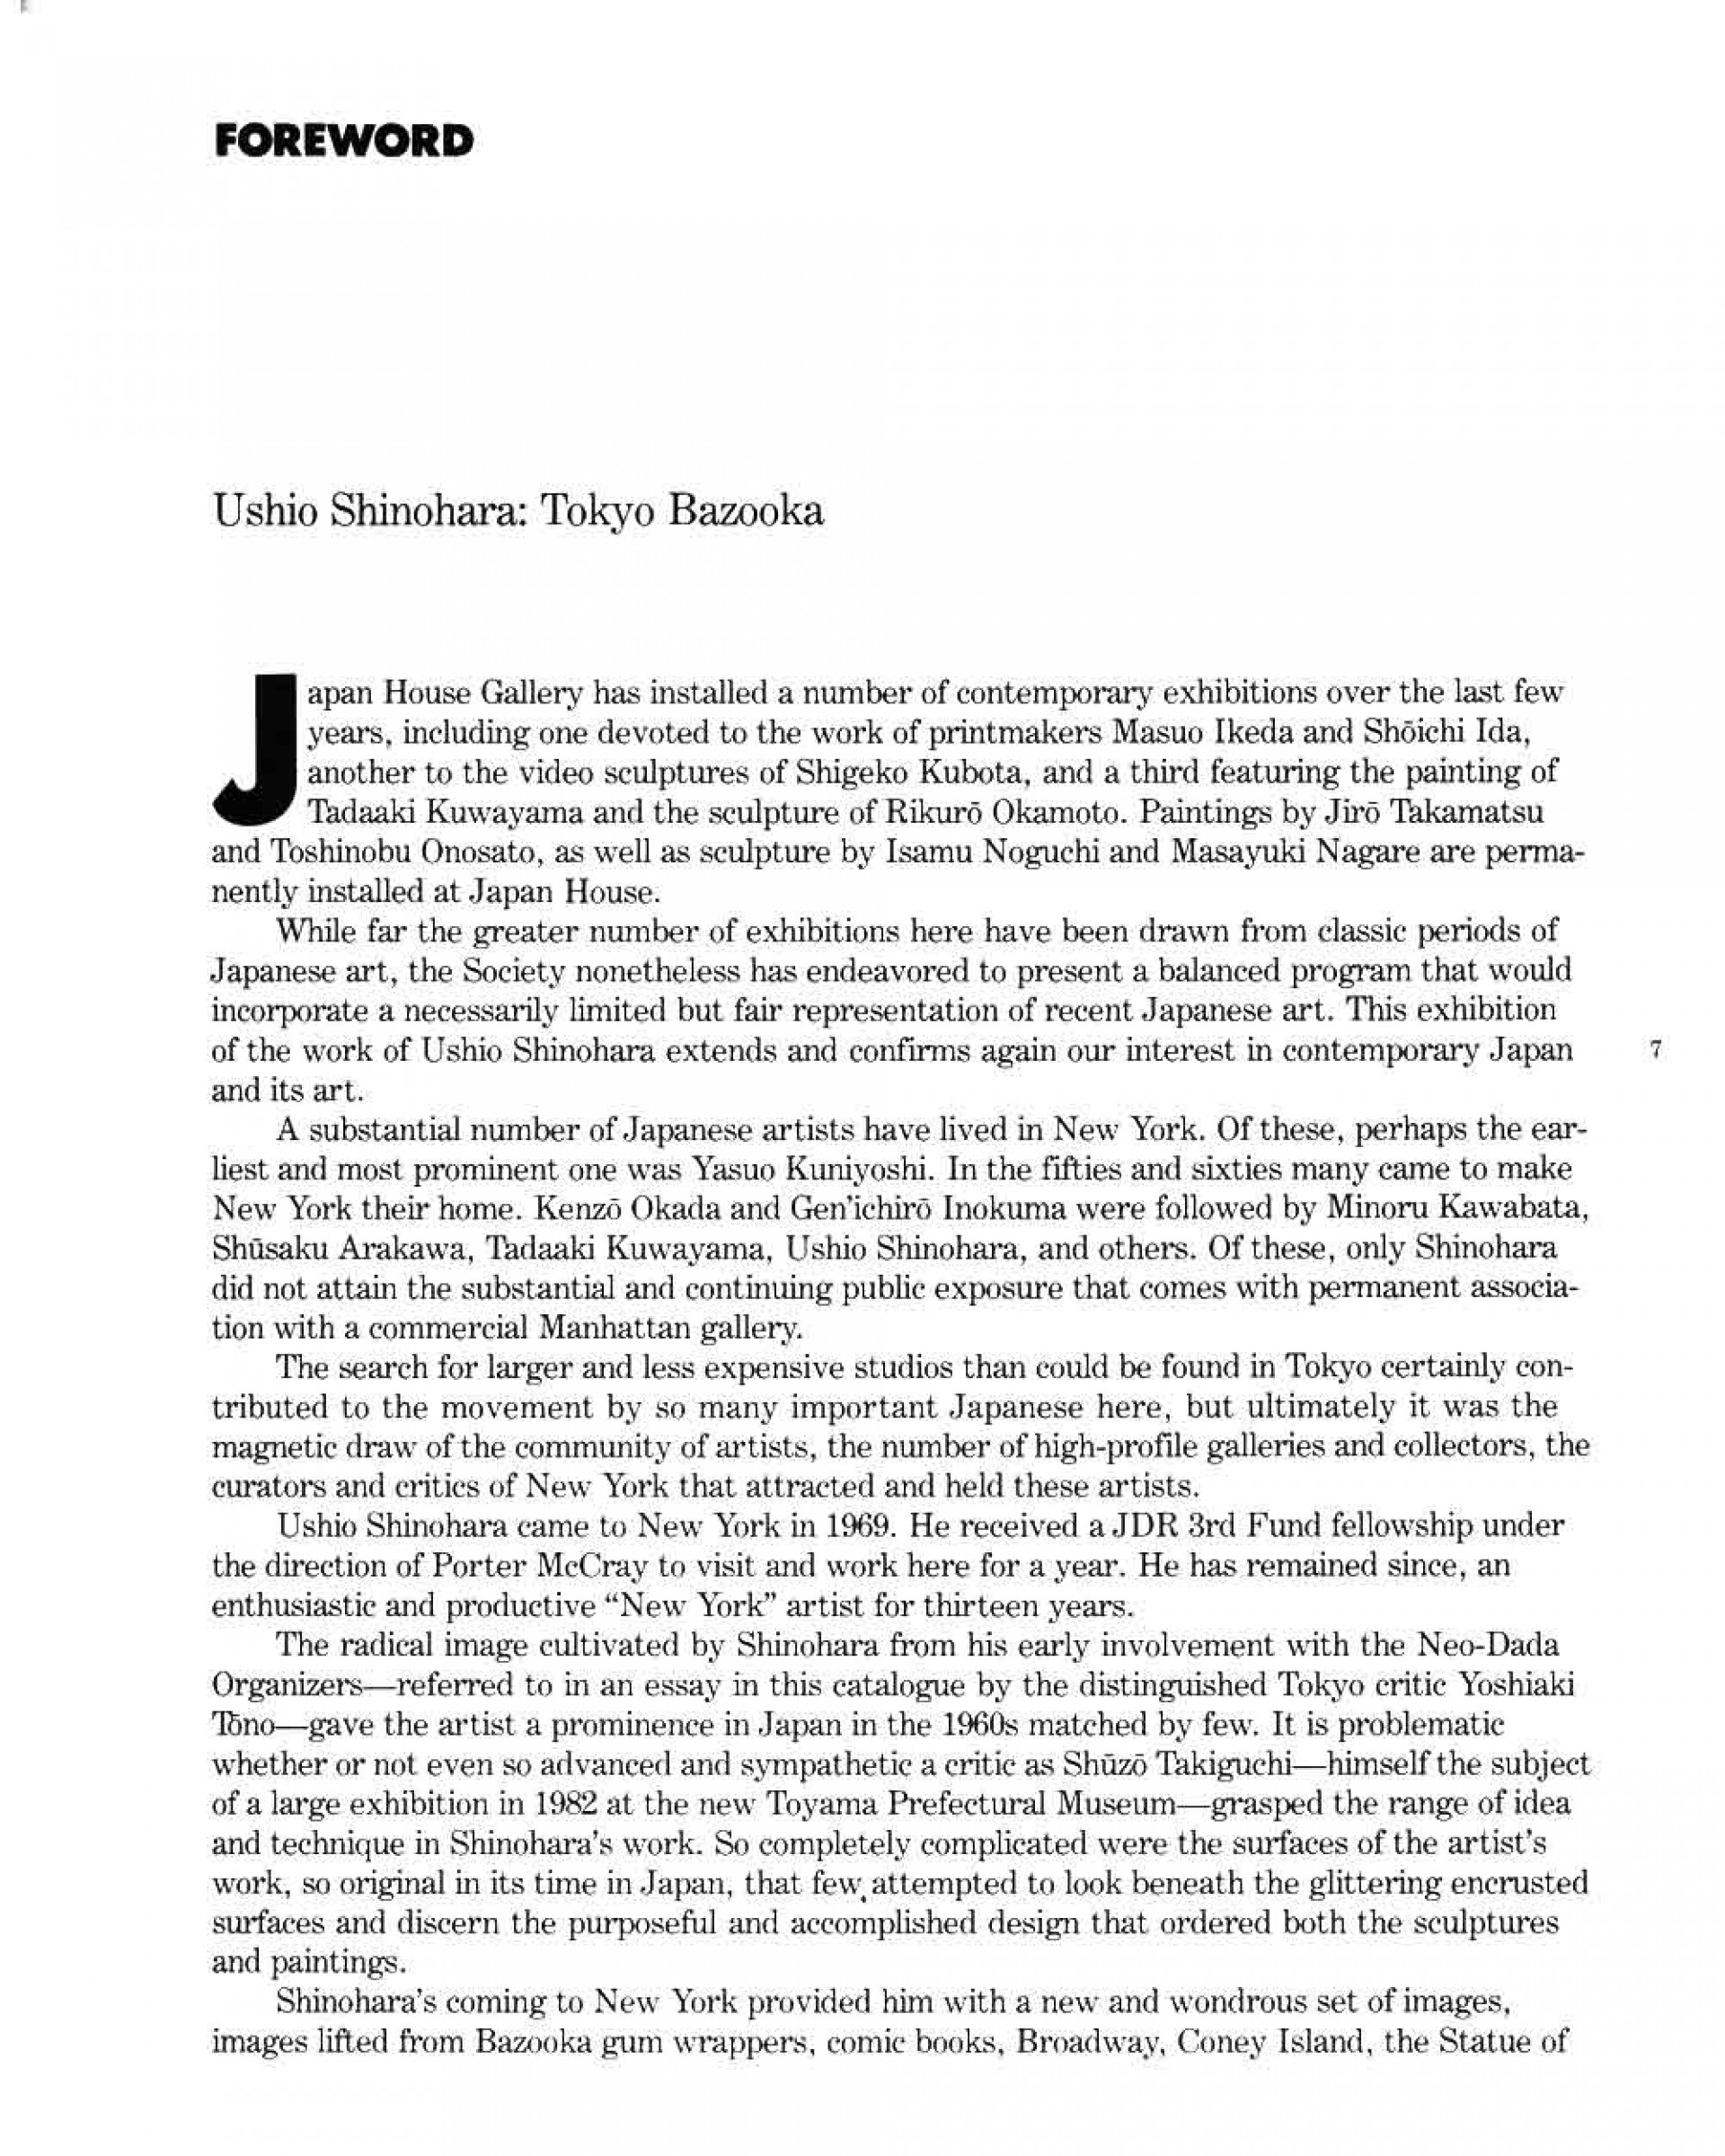 003 How To Cite Work In An Essay Example Ushio Shinohara Tokyo Bazooka Pg 1 Stupendous Nber Working Paper Mla A Web Source 1920